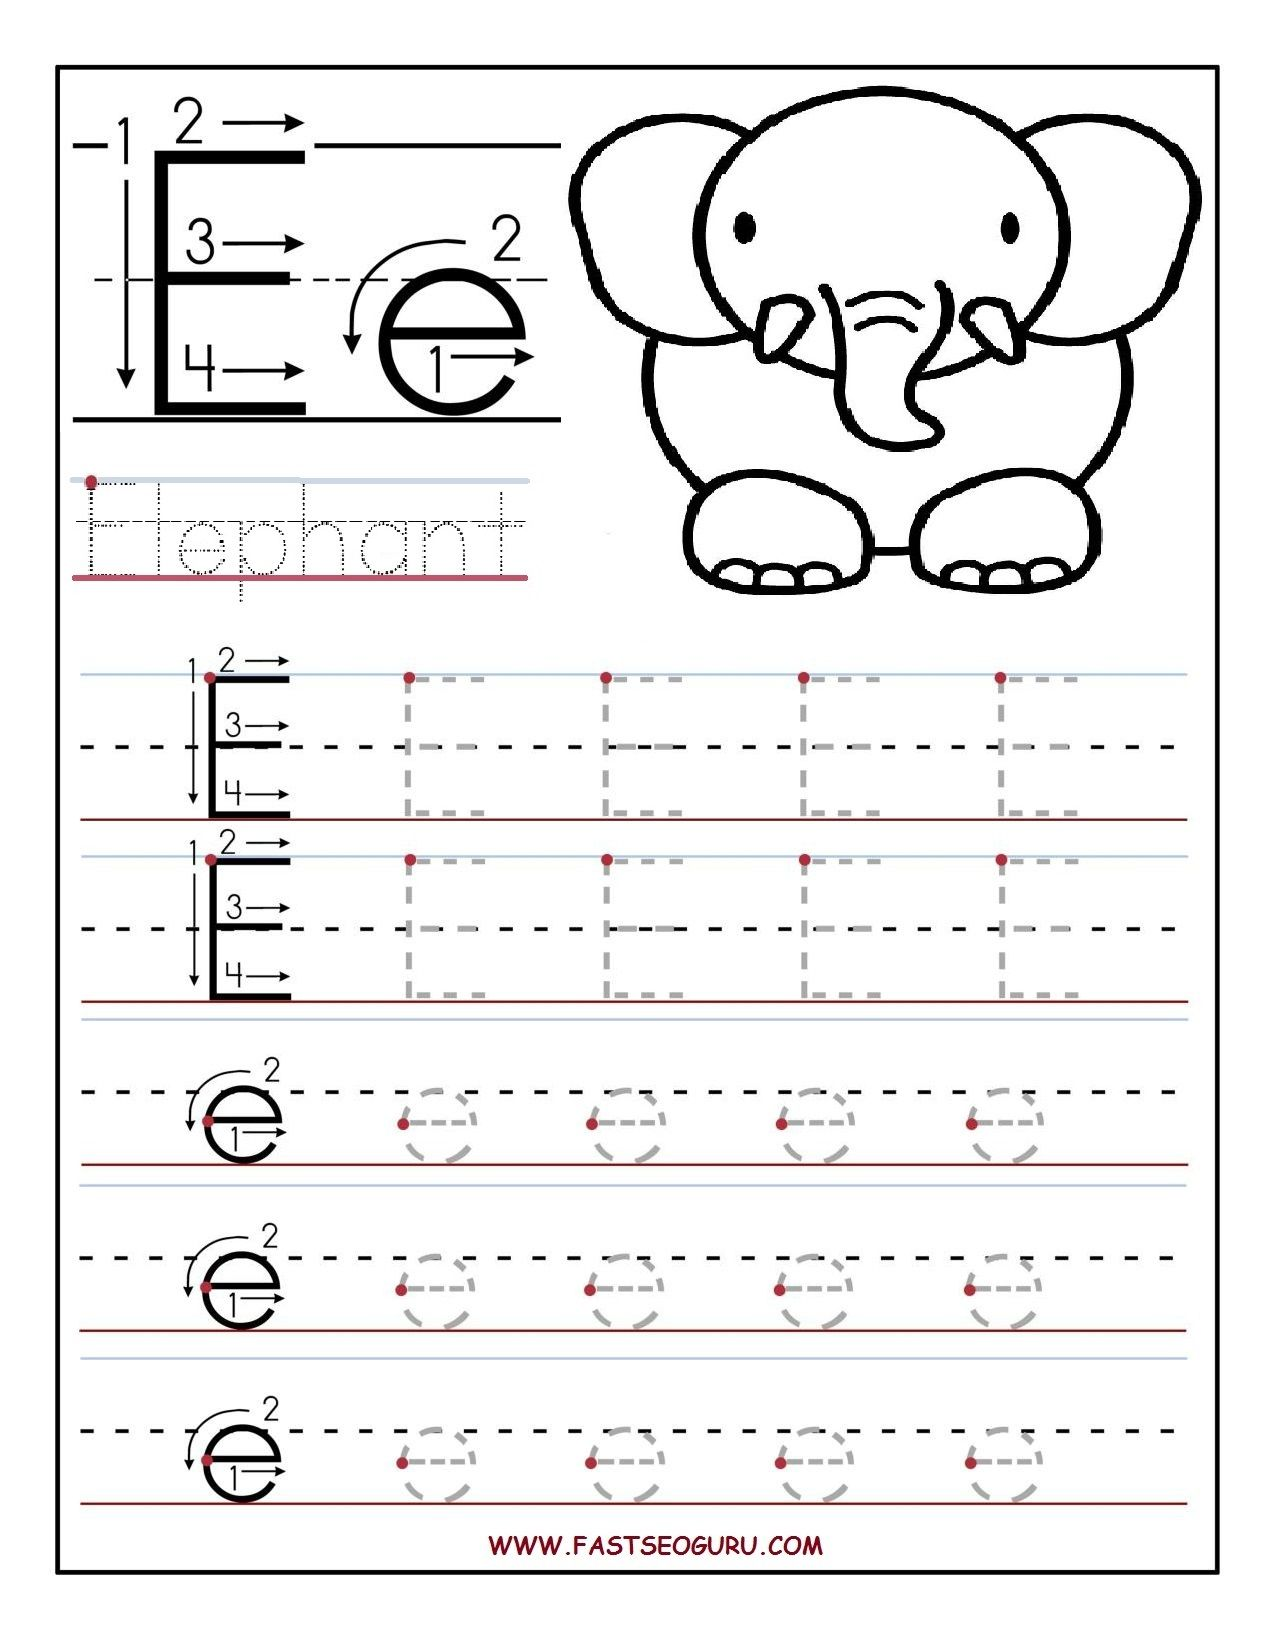 printable letter e tracing worksheets for preschool preschool letter tracing worksheets. Black Bedroom Furniture Sets. Home Design Ideas